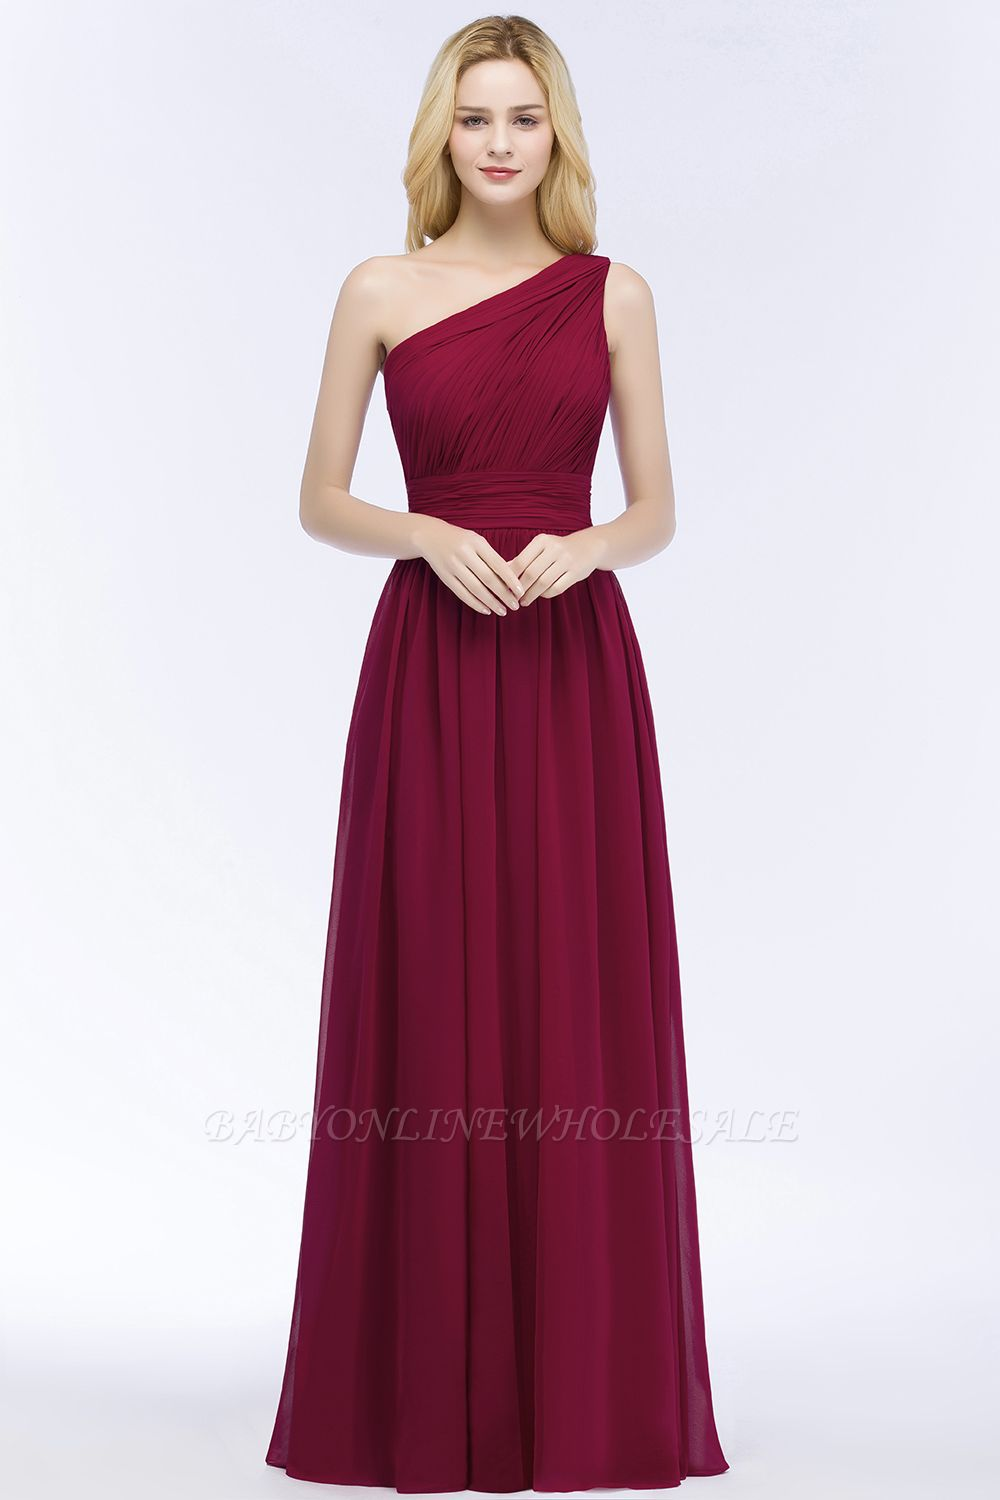 https://www.babyonlinewholesale.com/pattie-a-line-one-shoulder-floor-length-burgundy-ruffled-chiffon-bridesmaid-dresses-g796?cate_1=7